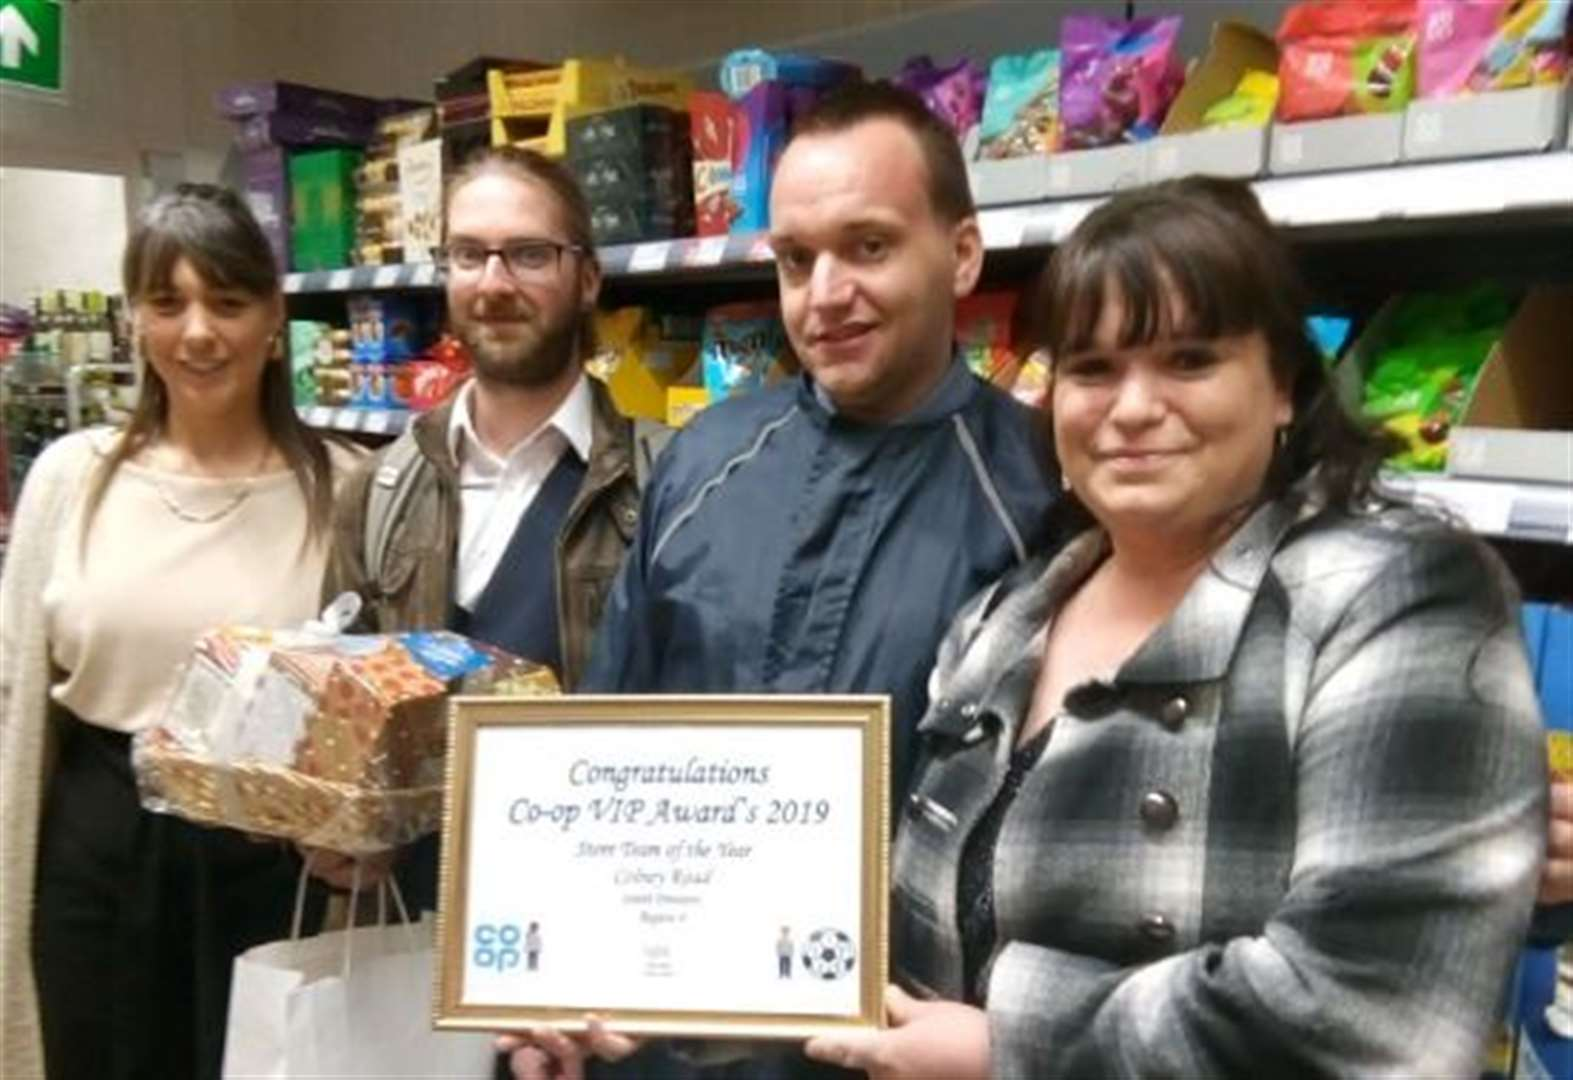 Co-op staff rewarded after hammer attack